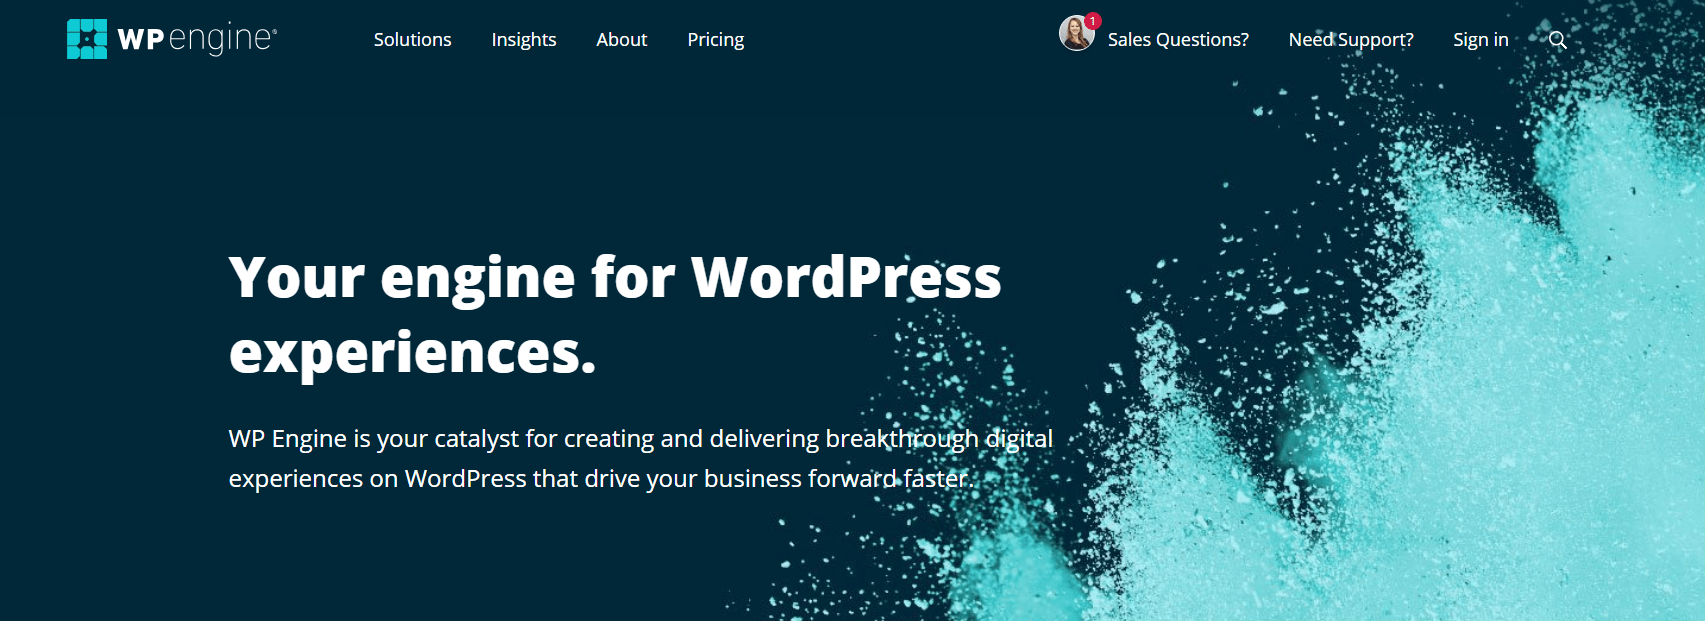 For Under 400 WP Engine WordPress Hosting